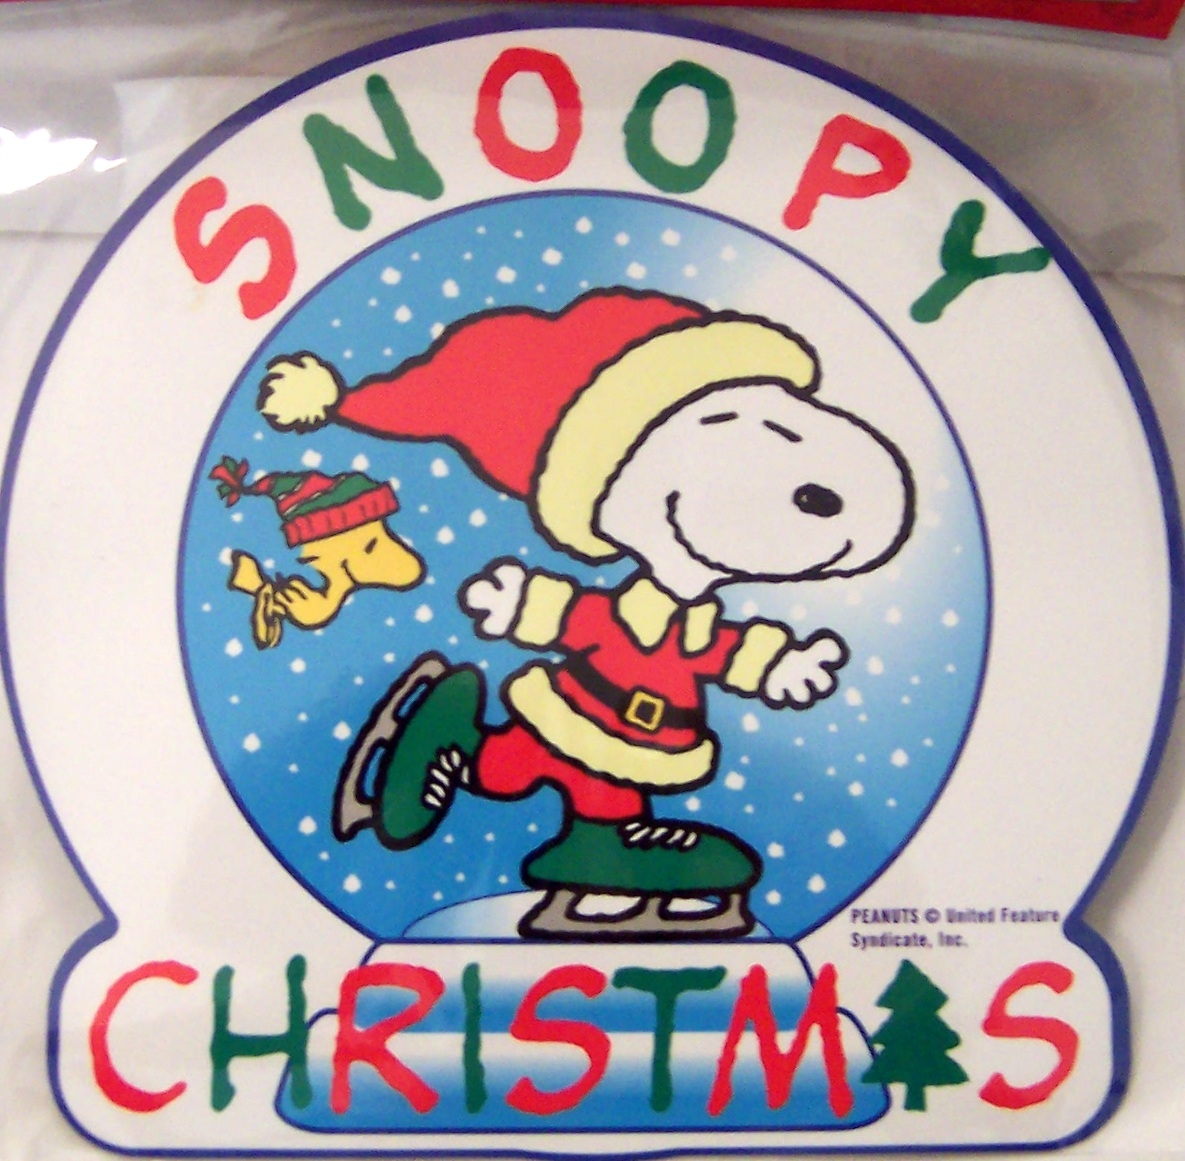 Snoopy And Woodstock Christmas Images.Santa Snoopy And Woodstock Christmas Jumbo Holiday Magnet New Sealed In Pack